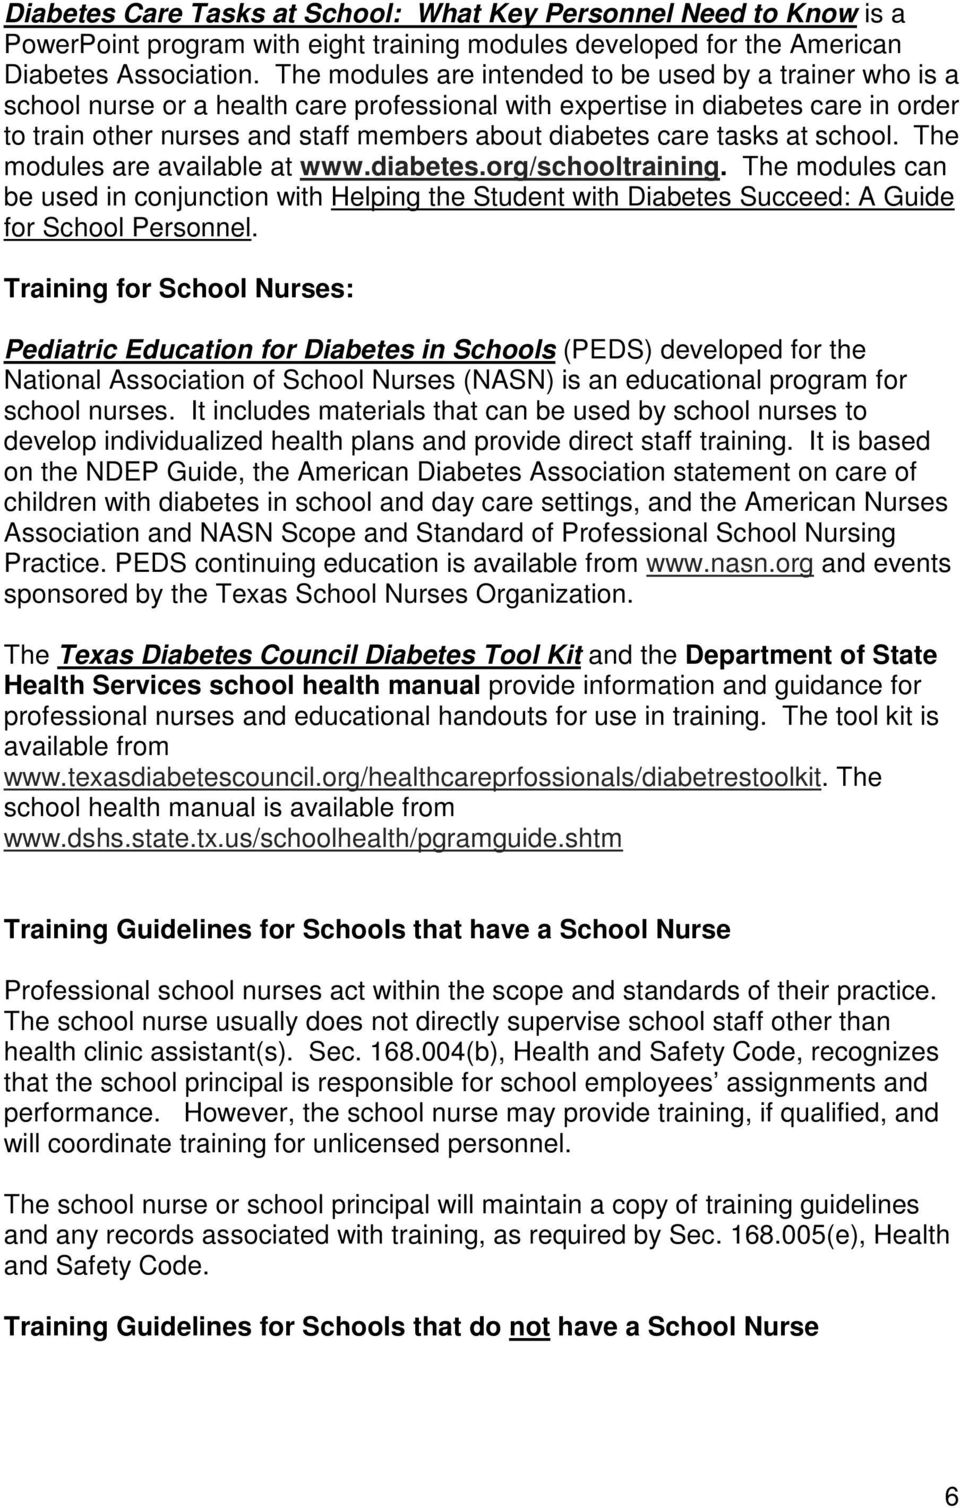 care tasks at school. The modules are available at www.diabetes.org/schooltraining. The modules can be used in conjunction with Helping the Student with Diabetes Succeed: A Guide for School Personnel.